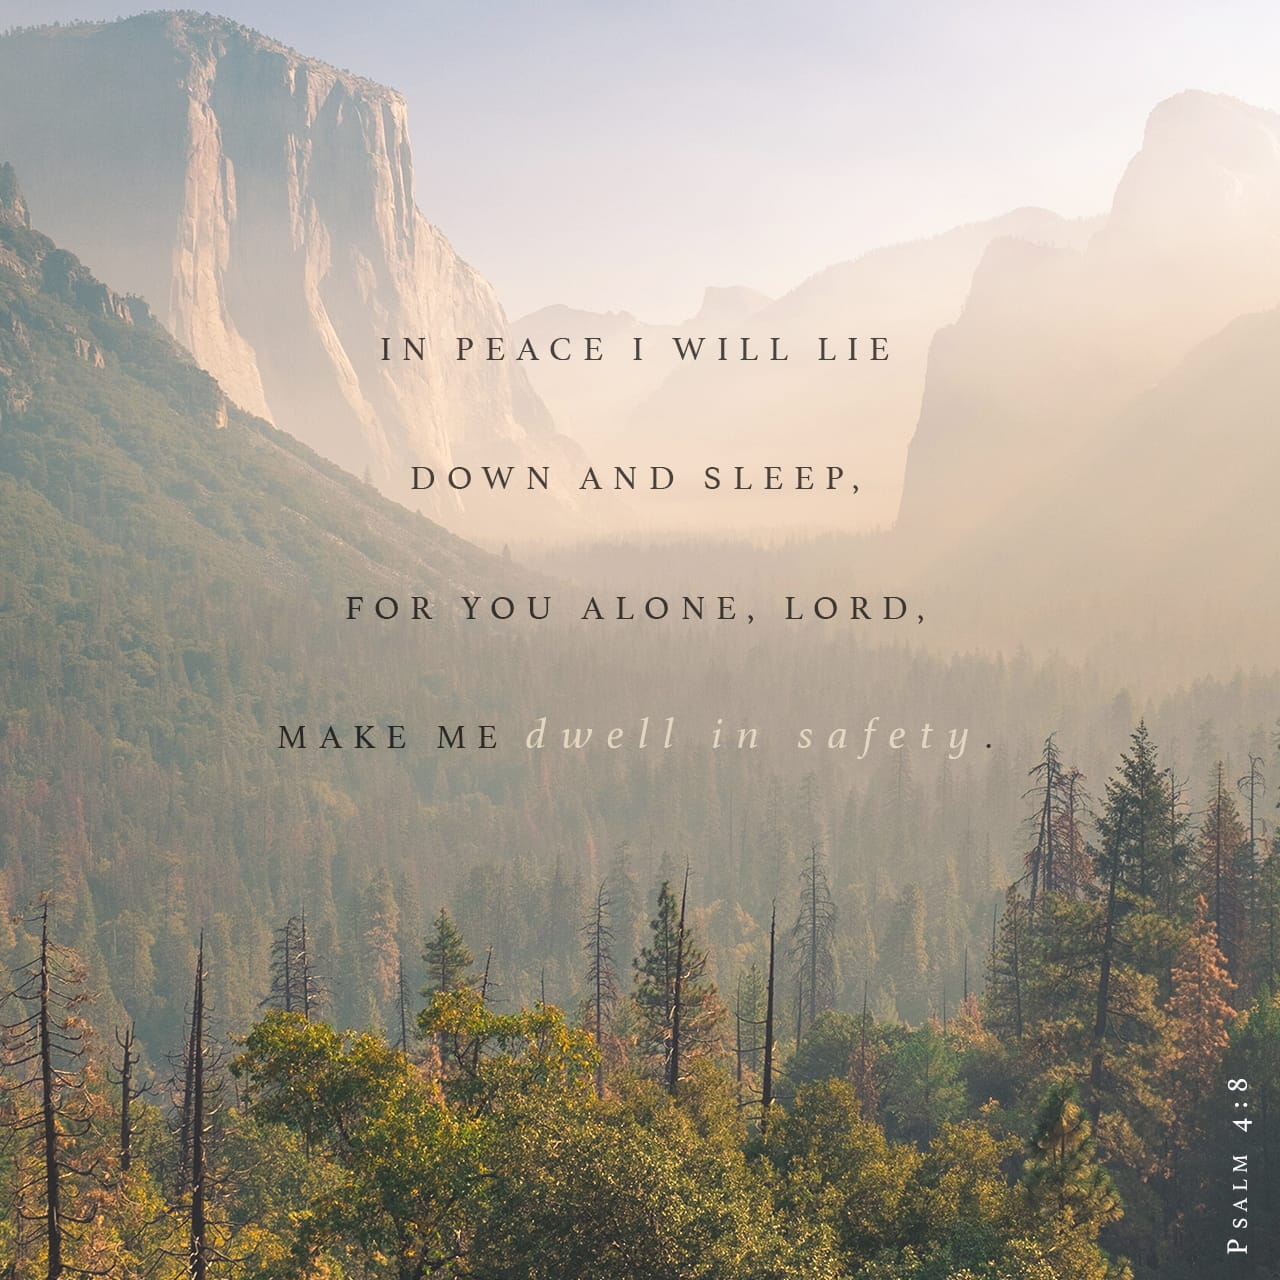 Psalms 4:8 I will both lay me down in peace, and sleep: for thou, LORD, only makest me dwell in safety. | King James Version (KJV)